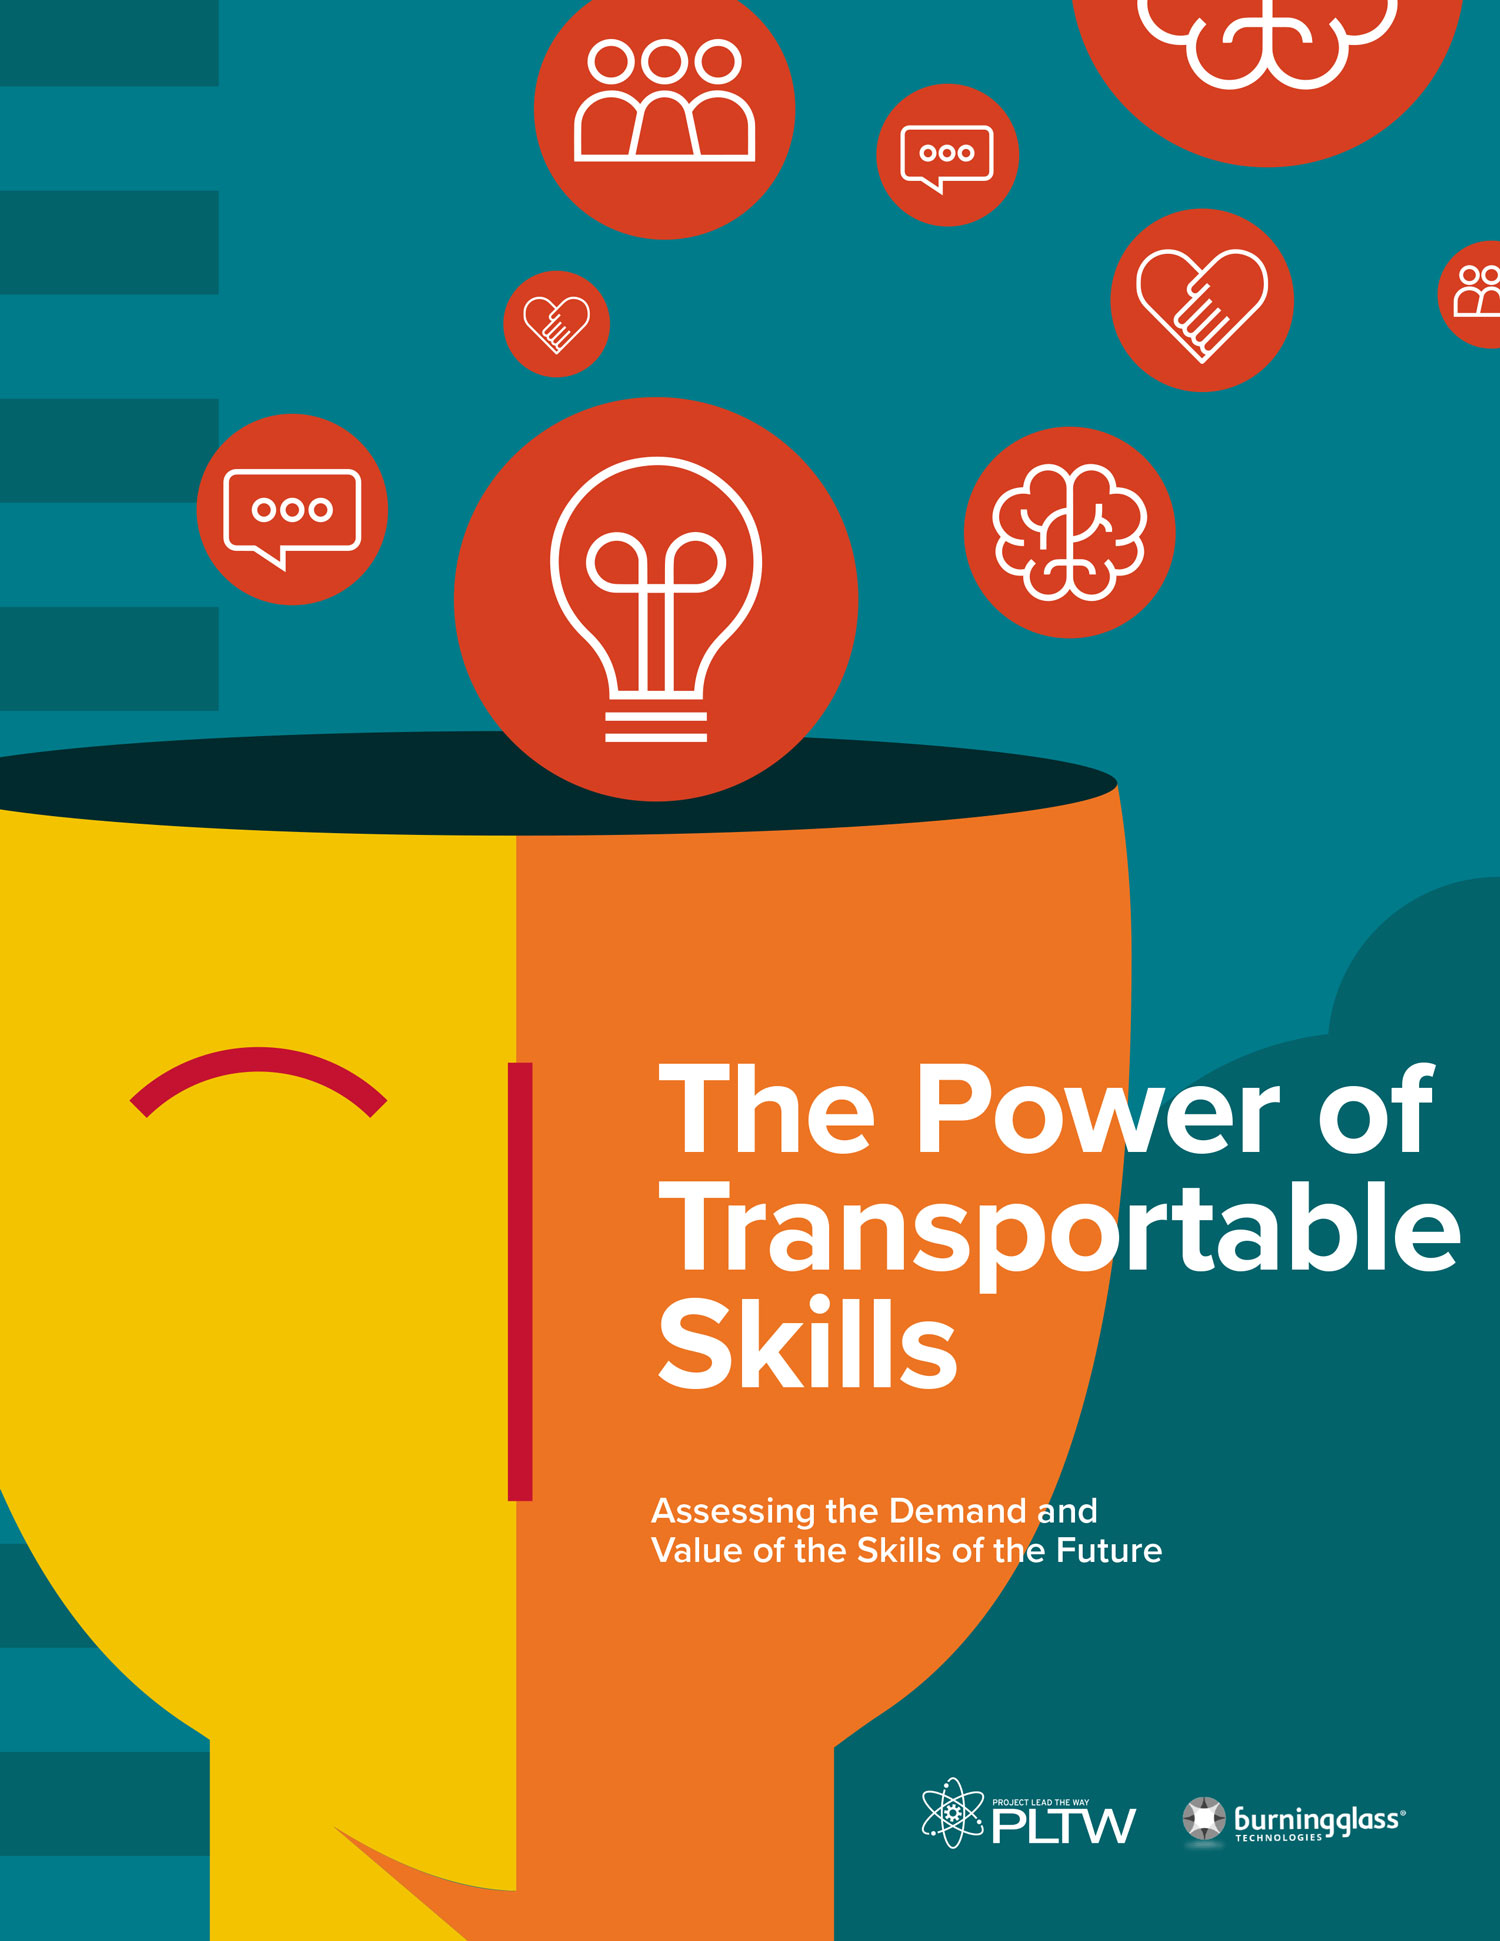 Christian-Brothers-School---PLTW-and-the-Power-of-Transportable-Skills-1